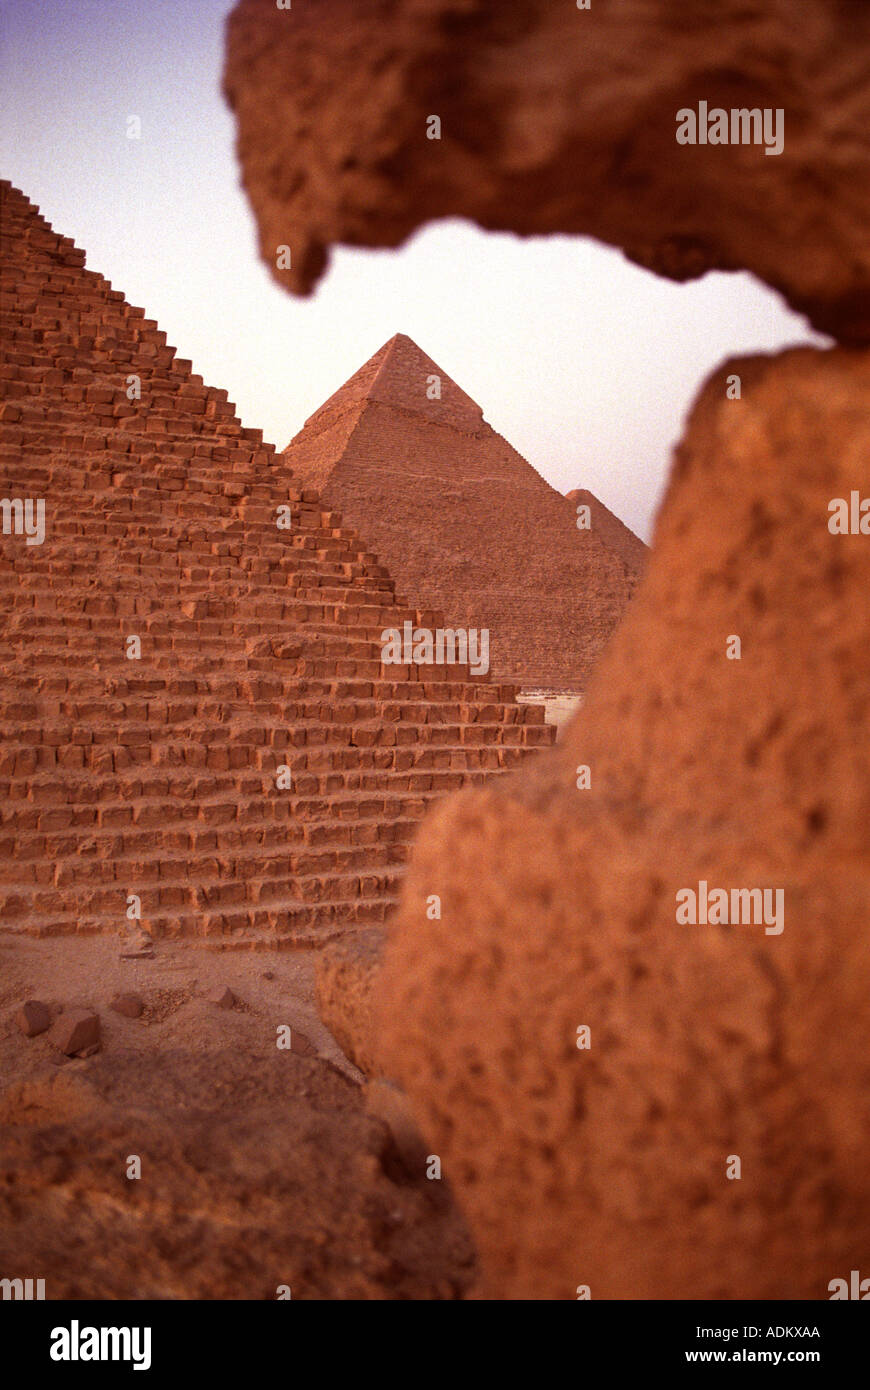 THE PYRAMIDS OF GIZA NEAR CAIRO EGYPT Stock Photo